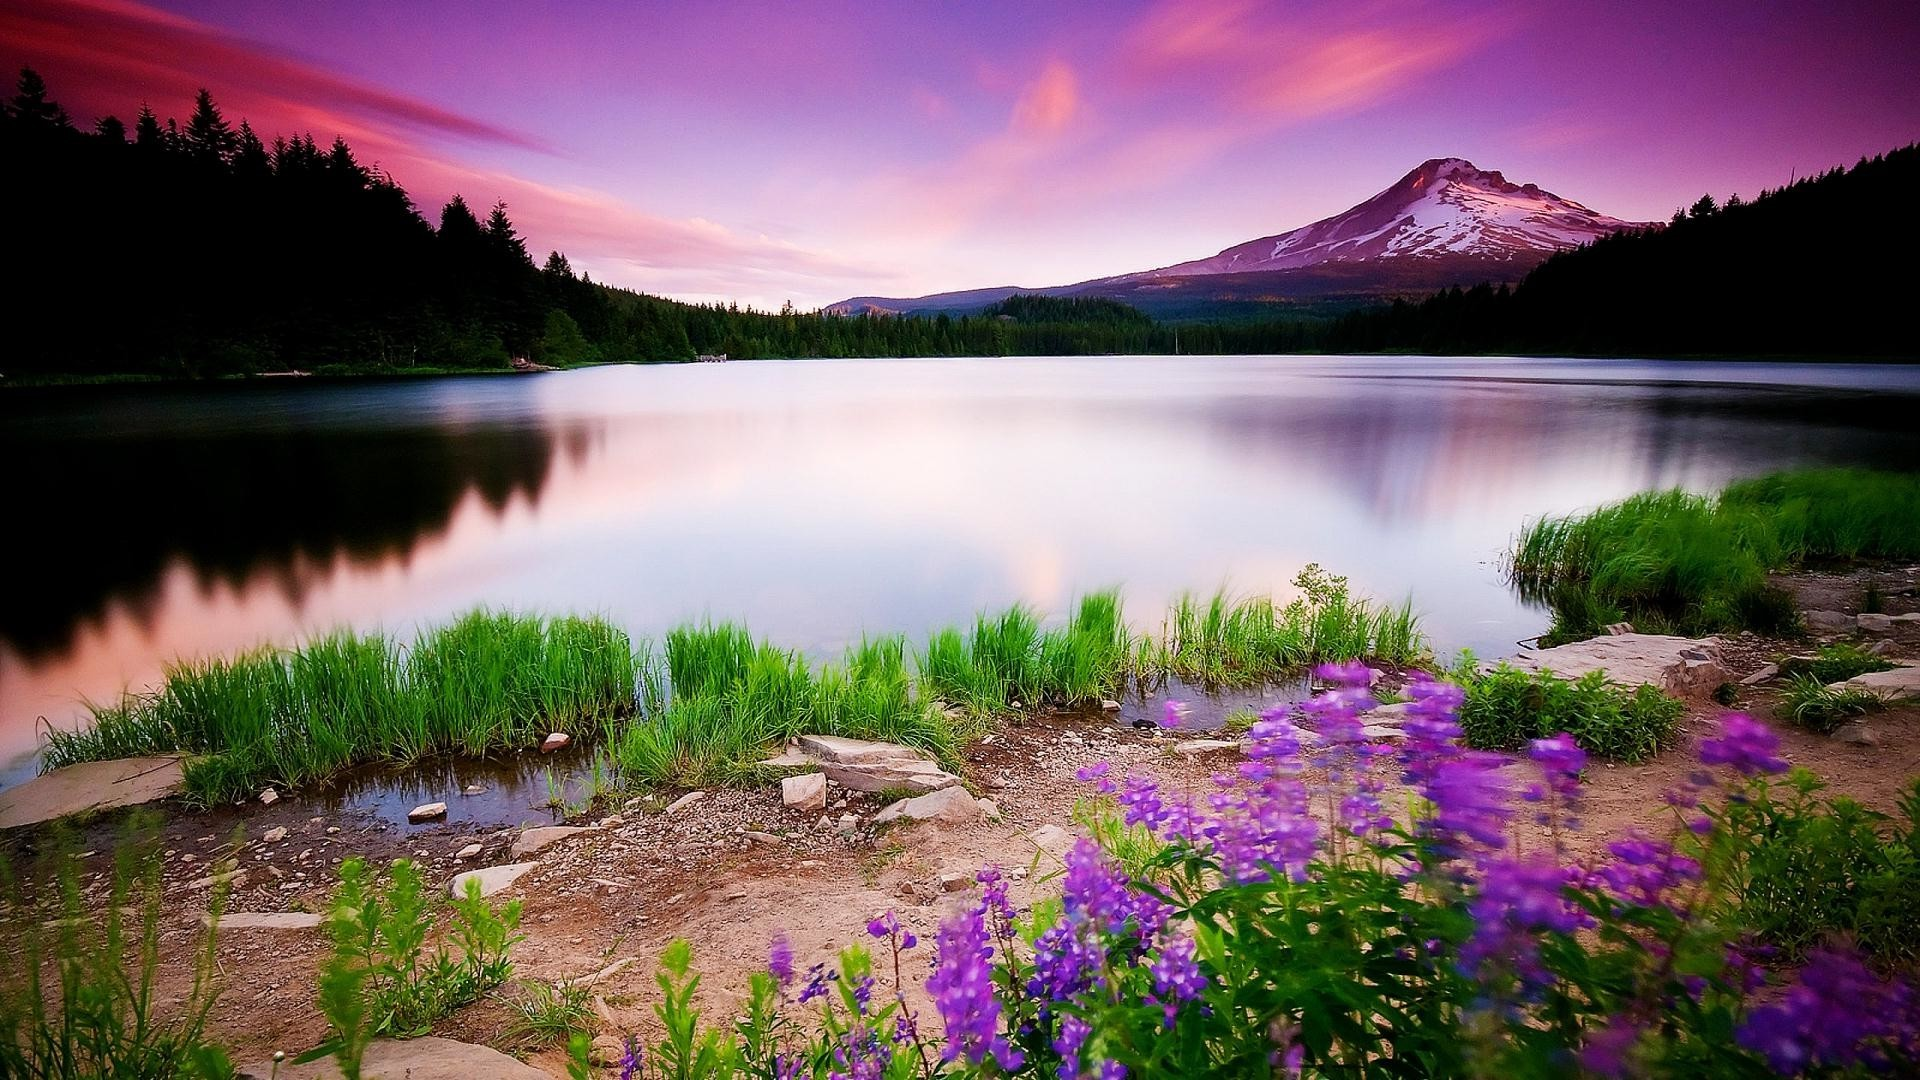 Nature Wallpapers HD Landscape Pictures   One HD Wallpaper Pictures …    MAMA DAIVA PLIOPIENE NATURE REAL EARTH   Pinterest   Nature wallpaper, …